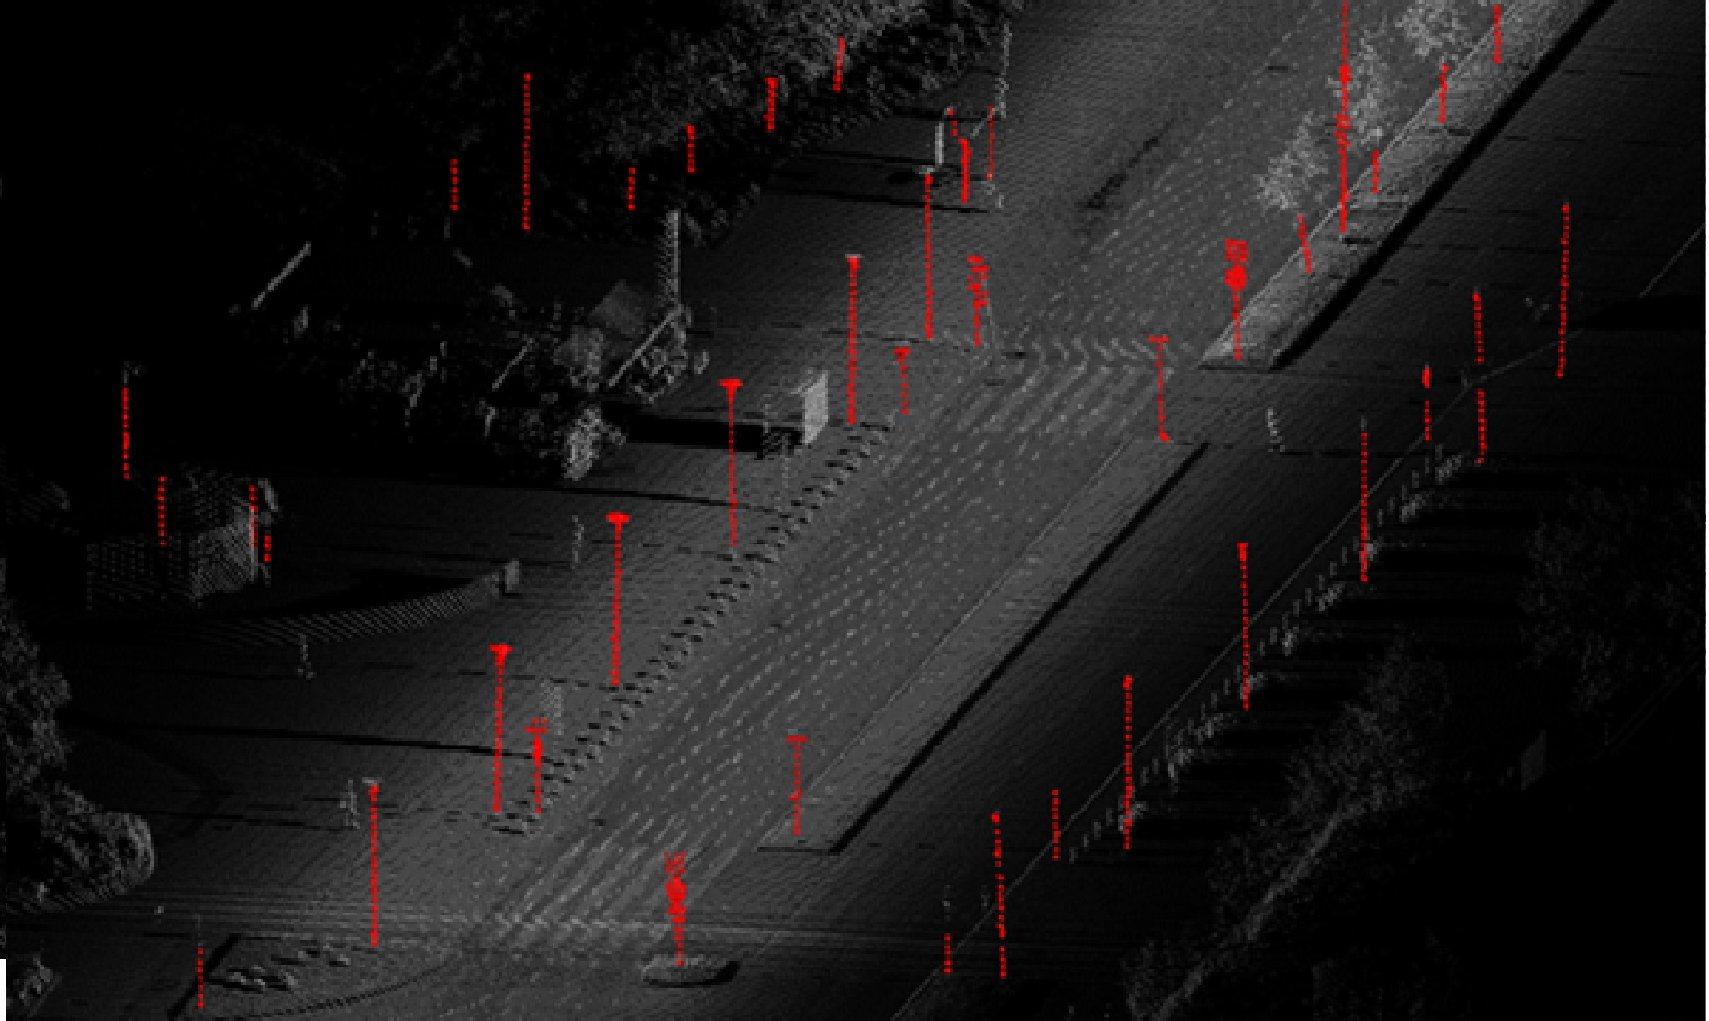 Point cloud of a road